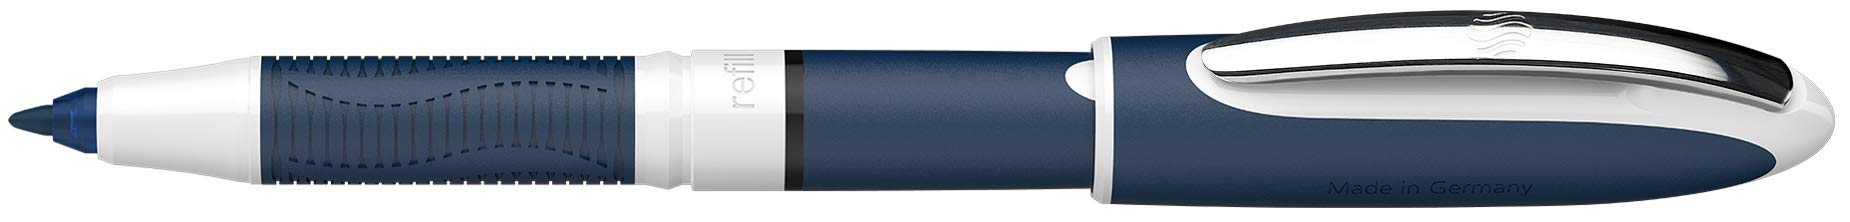 Schneider One Change 78371 Refillable Rollerball Pen Blue with 2 Cartridges Plus 1 Cartridge Free Black by Schneider (Image #5)